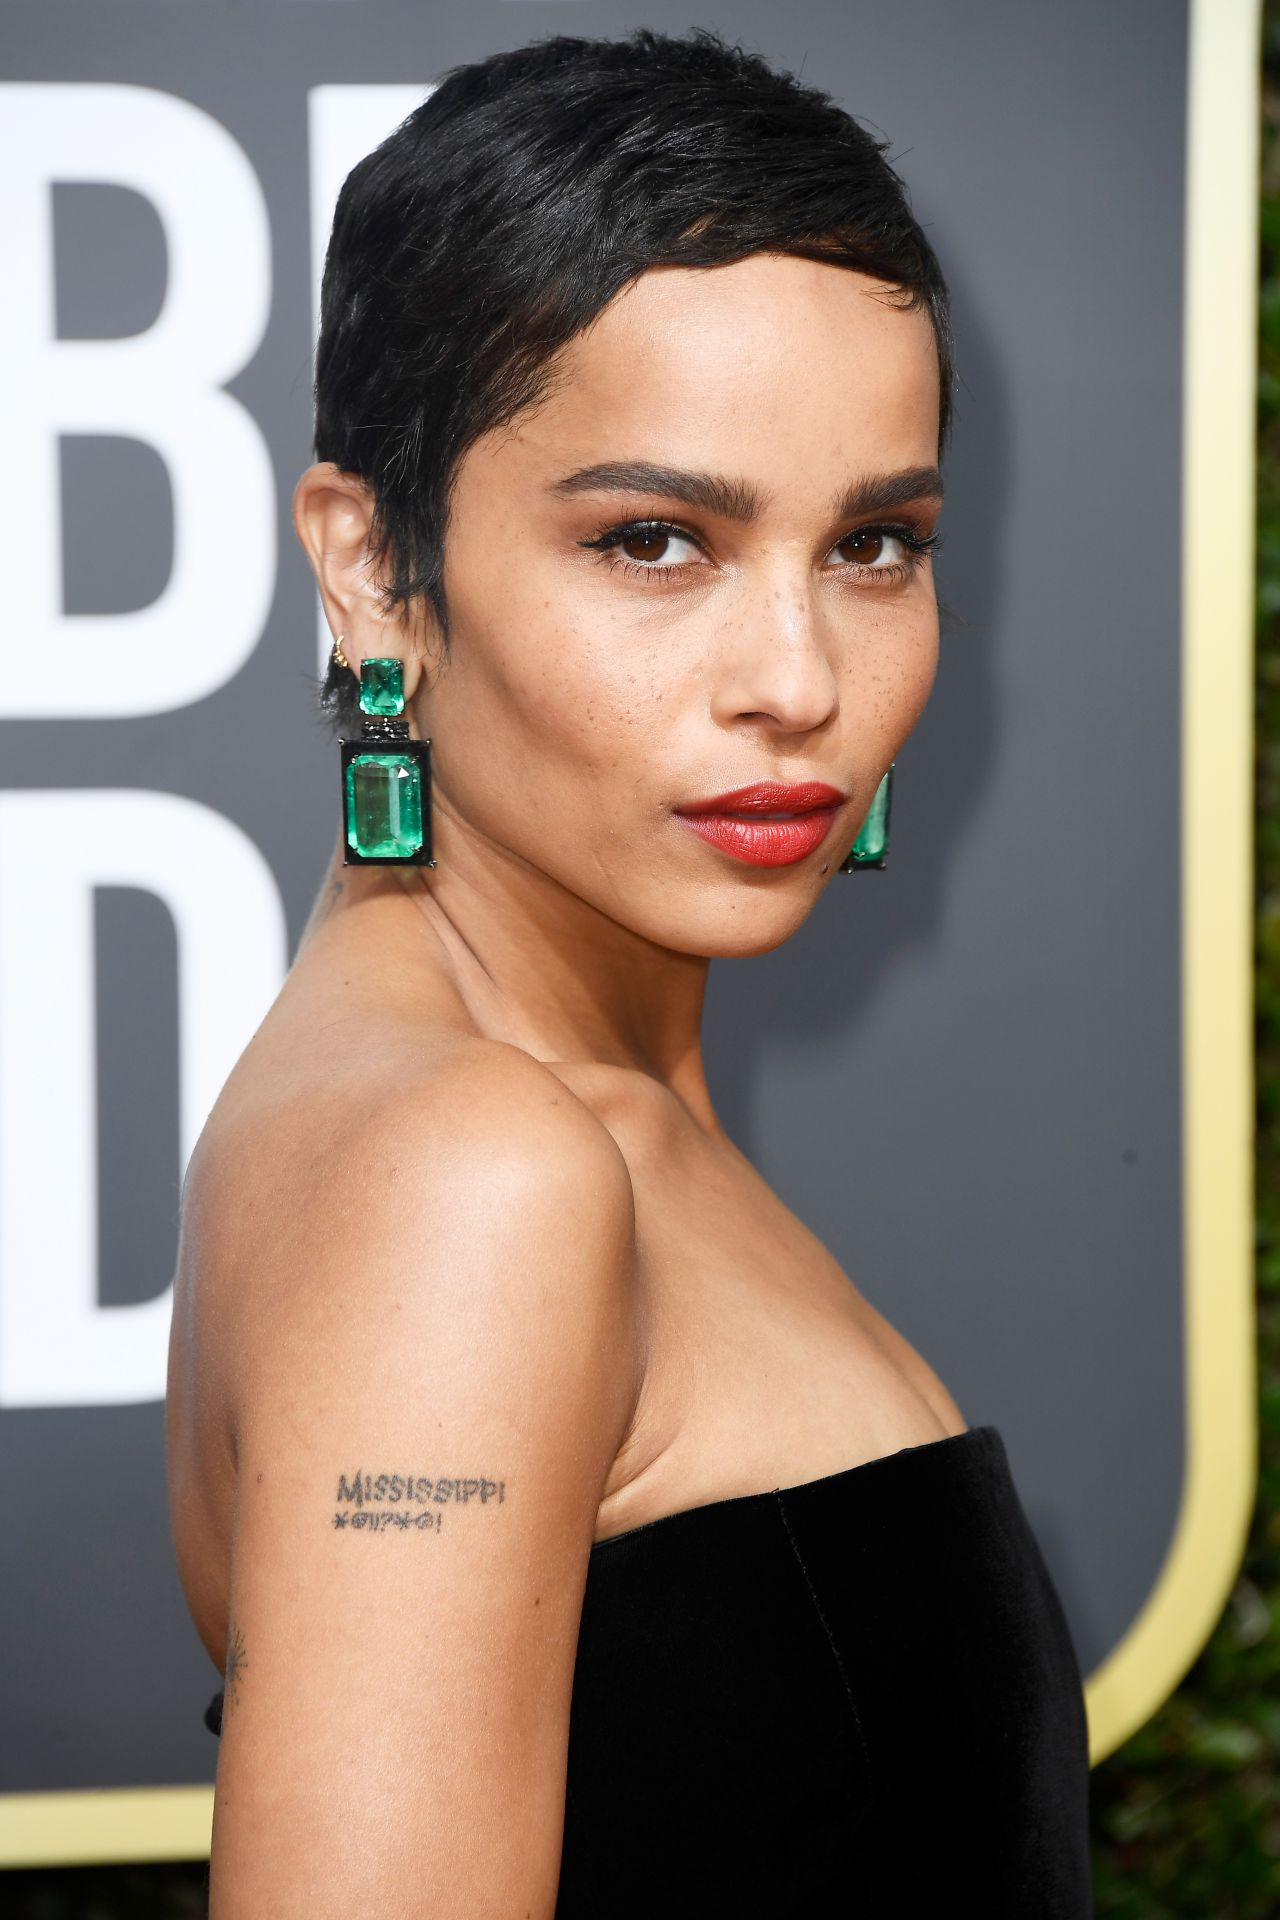 Zoe Kravitz Golden Globe Awards 2018